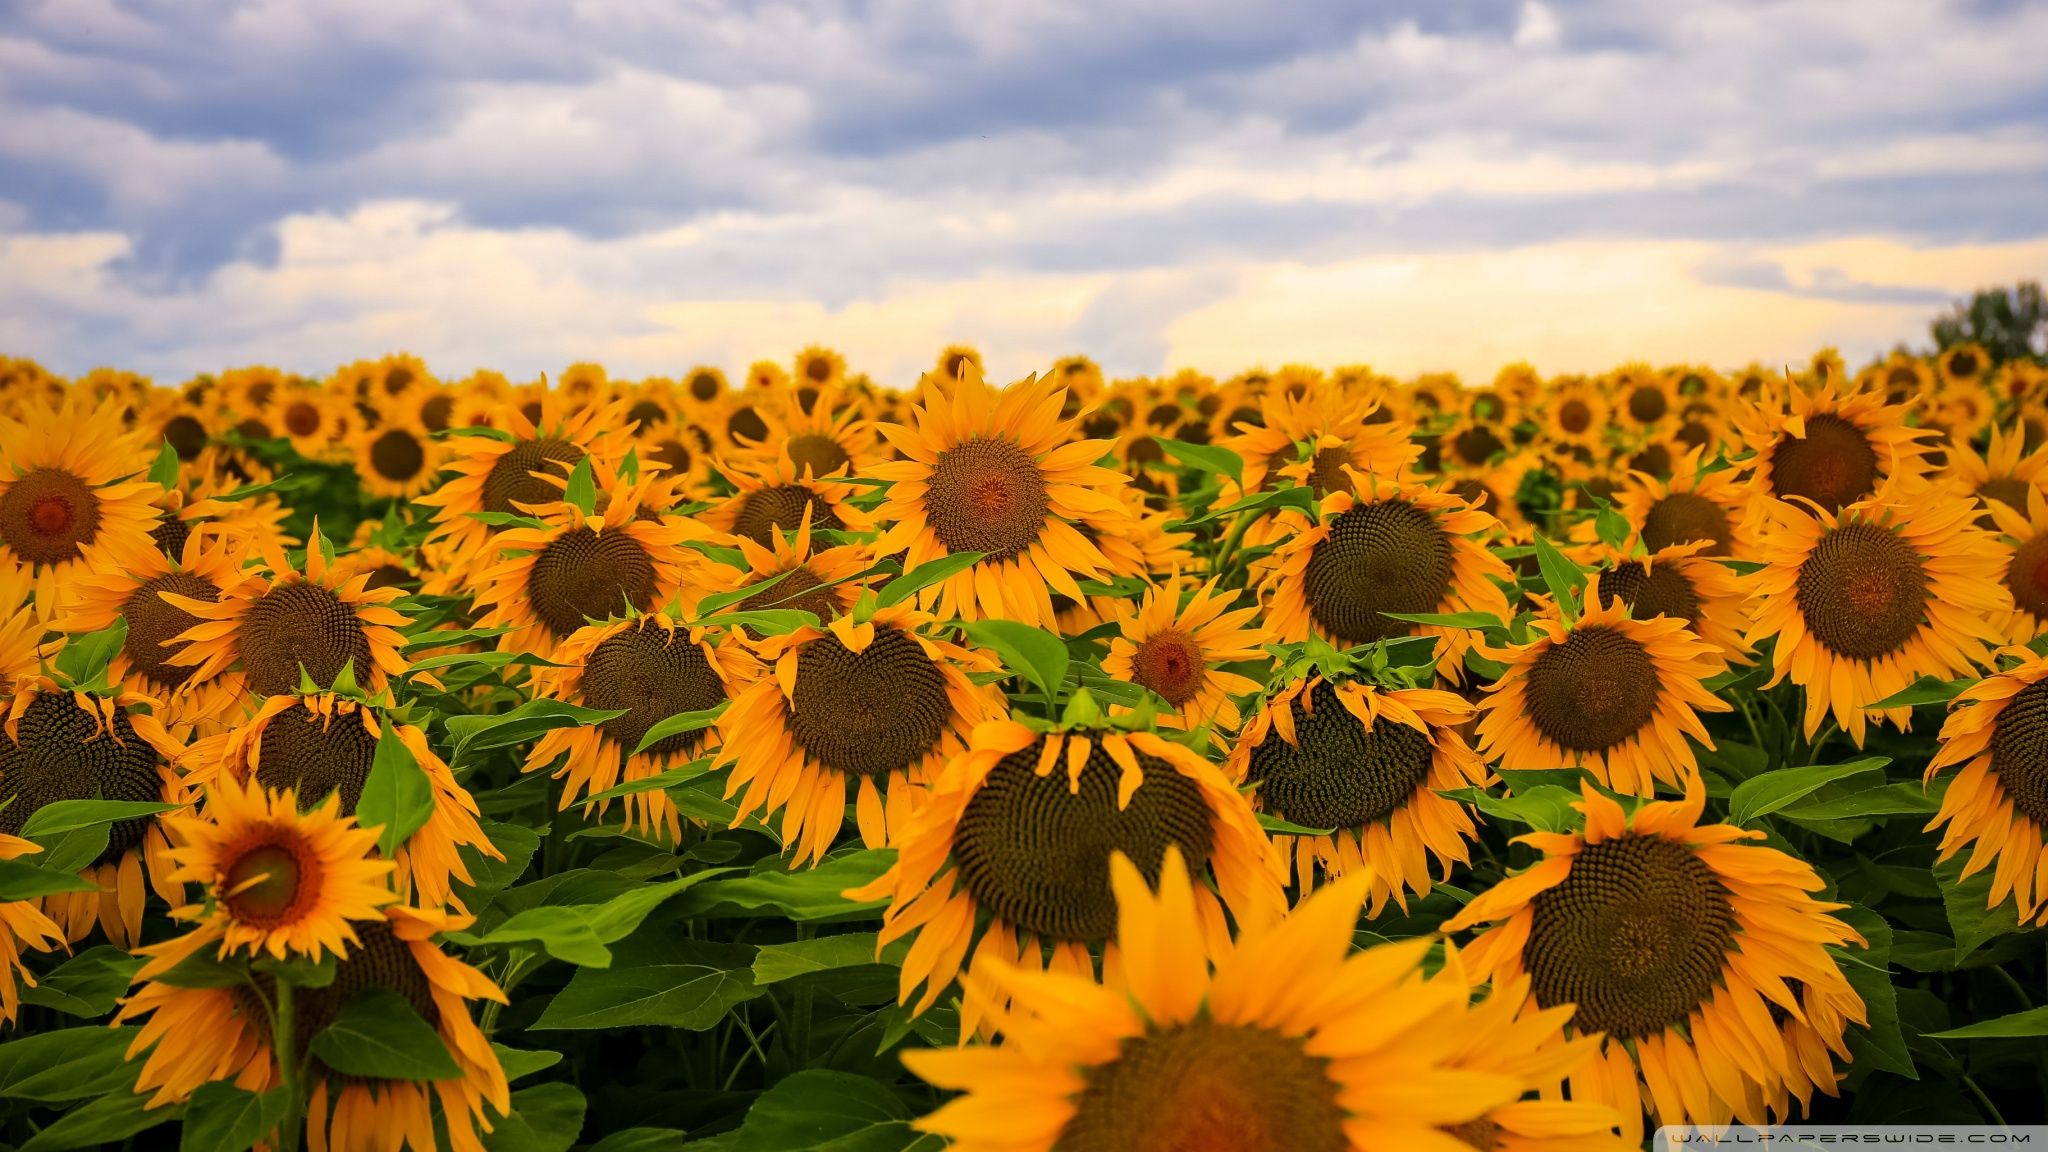 Sunflower Fields Wallpaper Desktop Hq Field Clouds Sky 4K HD For Ultra